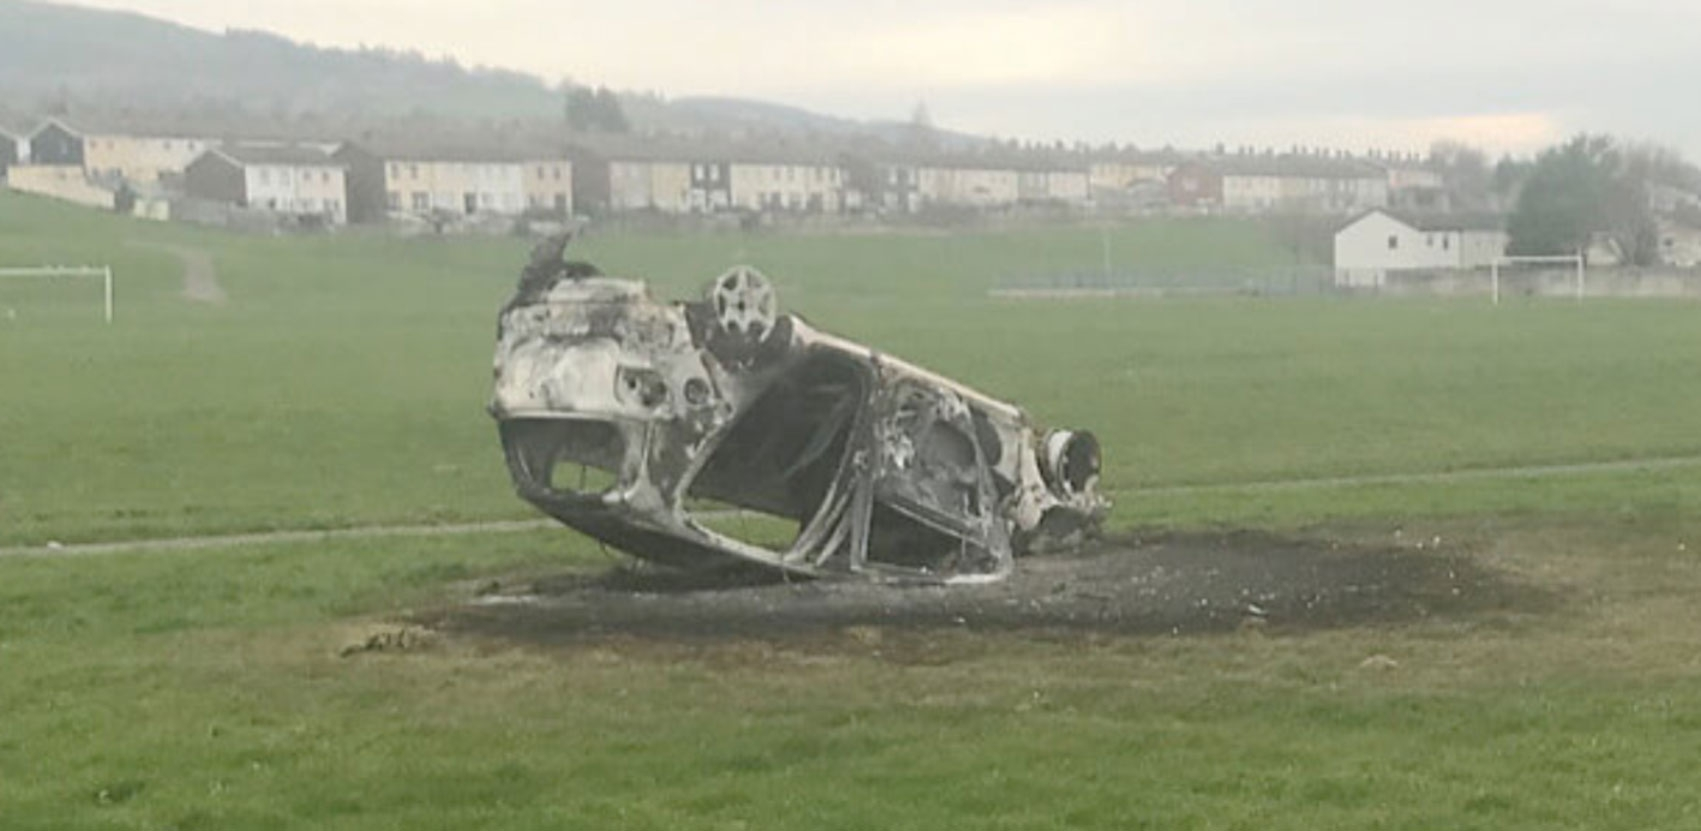 'Ongoing battle' against burnt out cars in Killinarden Park